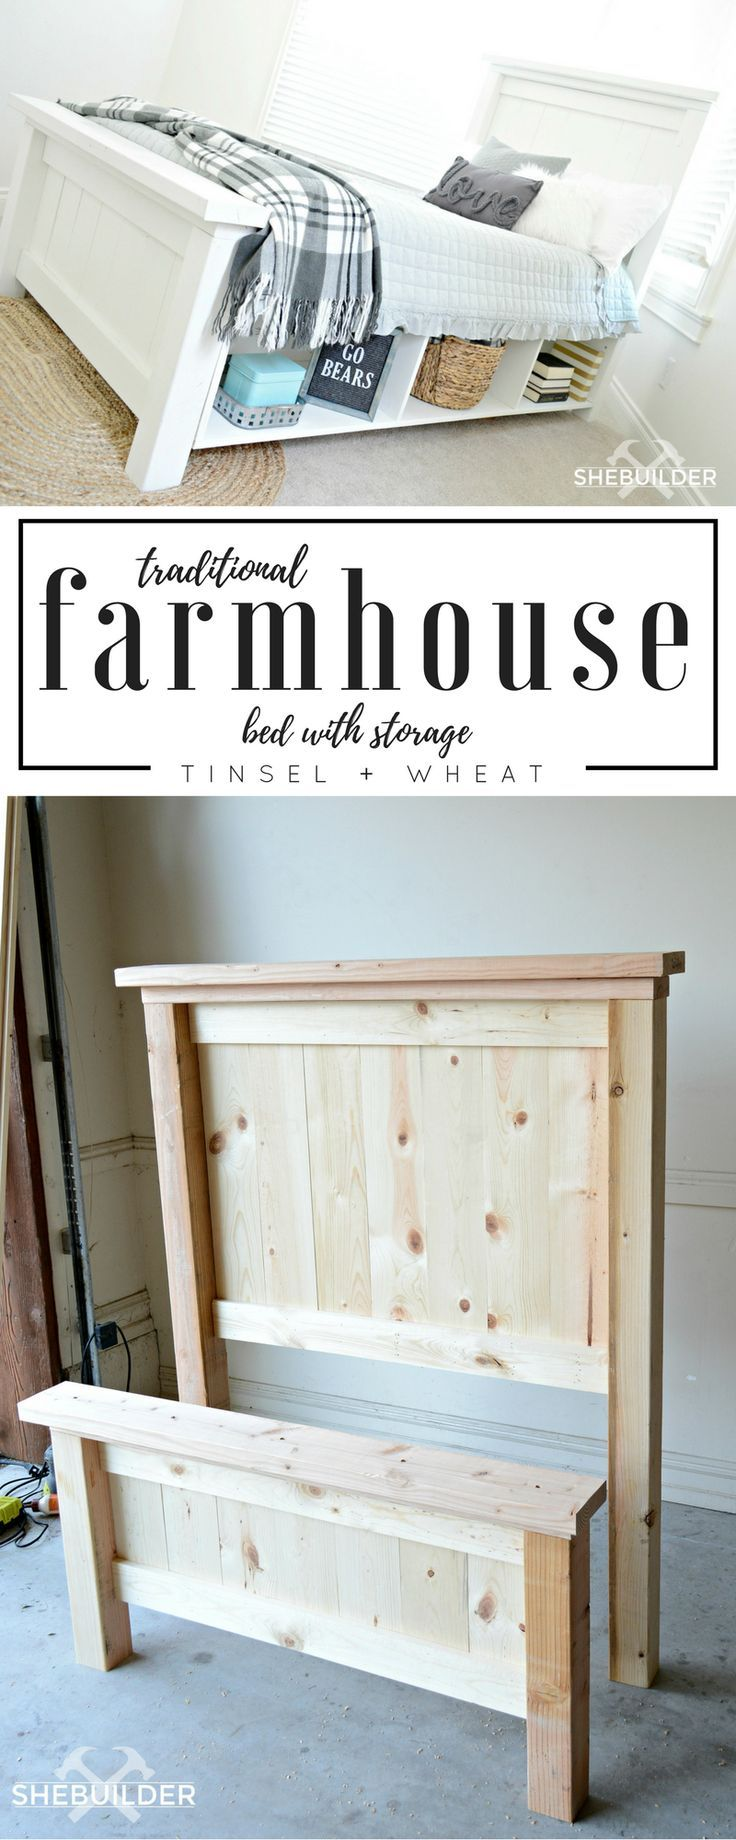 DIY Traditional Farmhouse Bed with Storage - Tinsel + Wheat